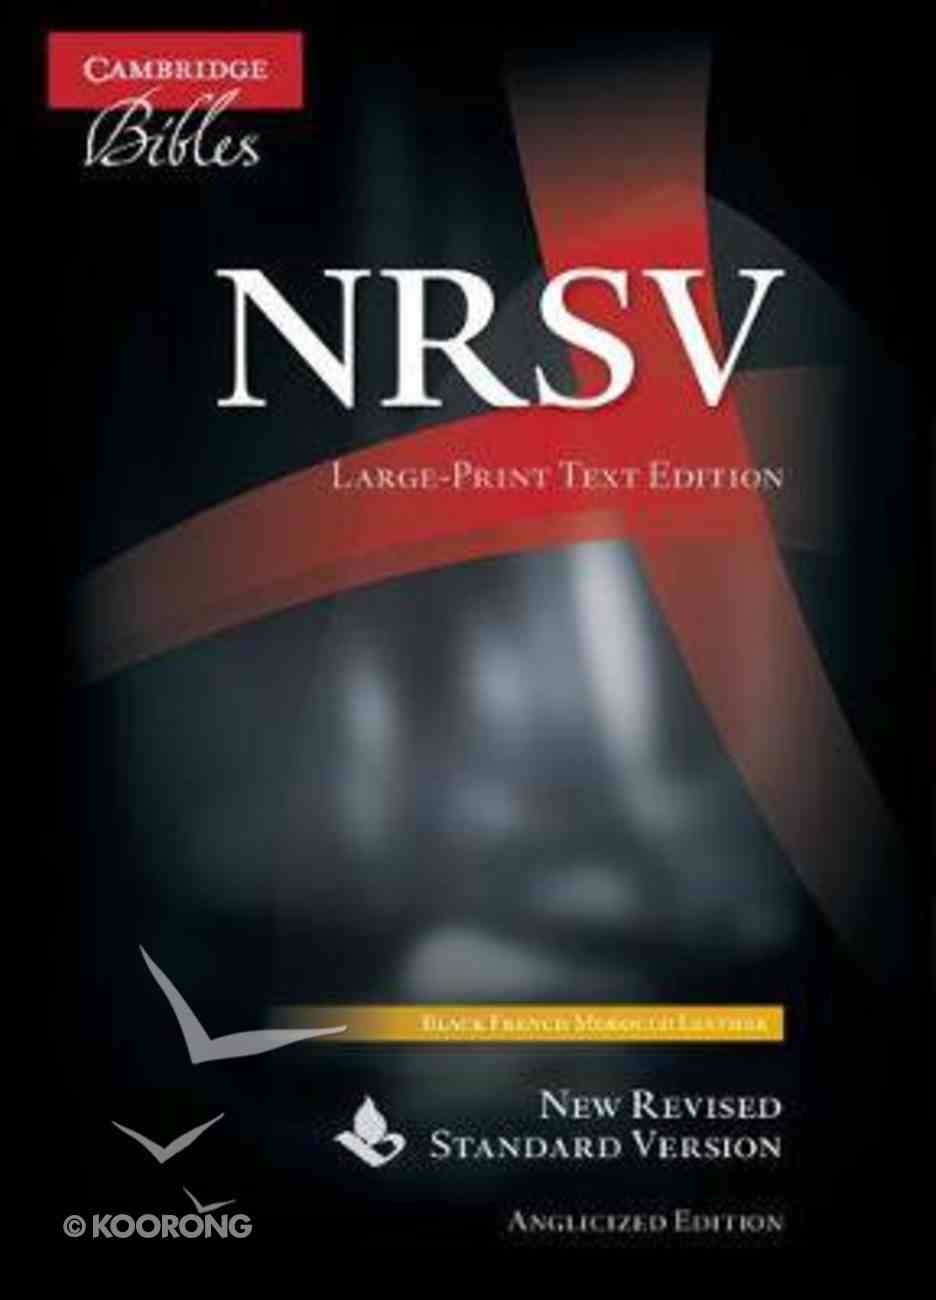 NRSV Large Print Text Bible Anglicised Edition Black Morocco Leather (Sheepskin)